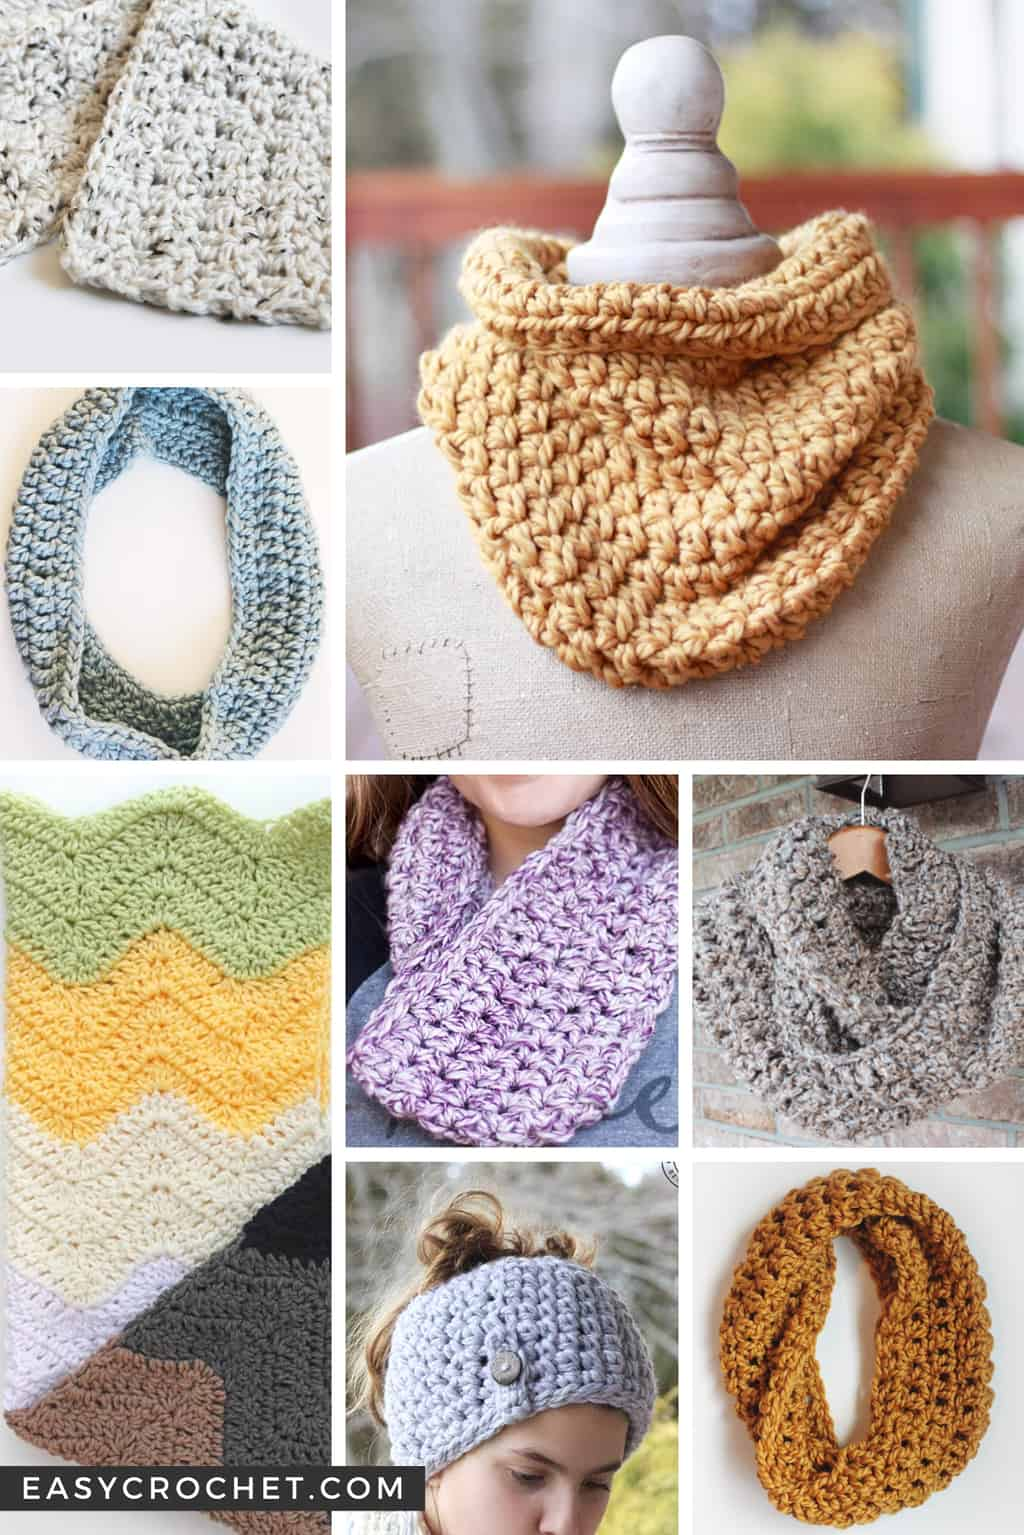 Loops & Threads Crochet Patterns Free